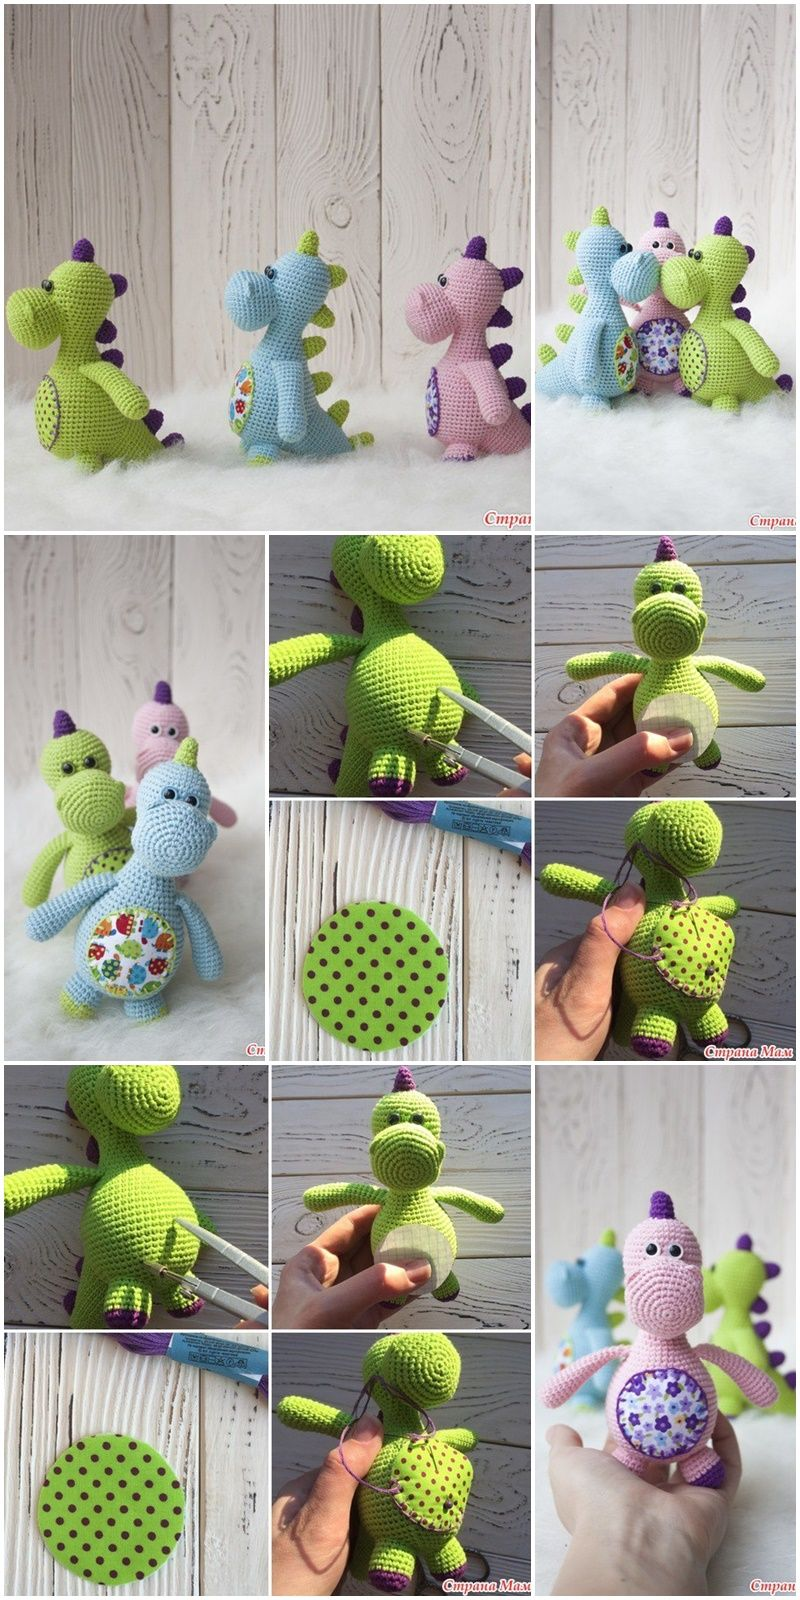 2019 All Best Amigurumi Crochet Patterns - Amigurumi #crochetdinosaurpatterns